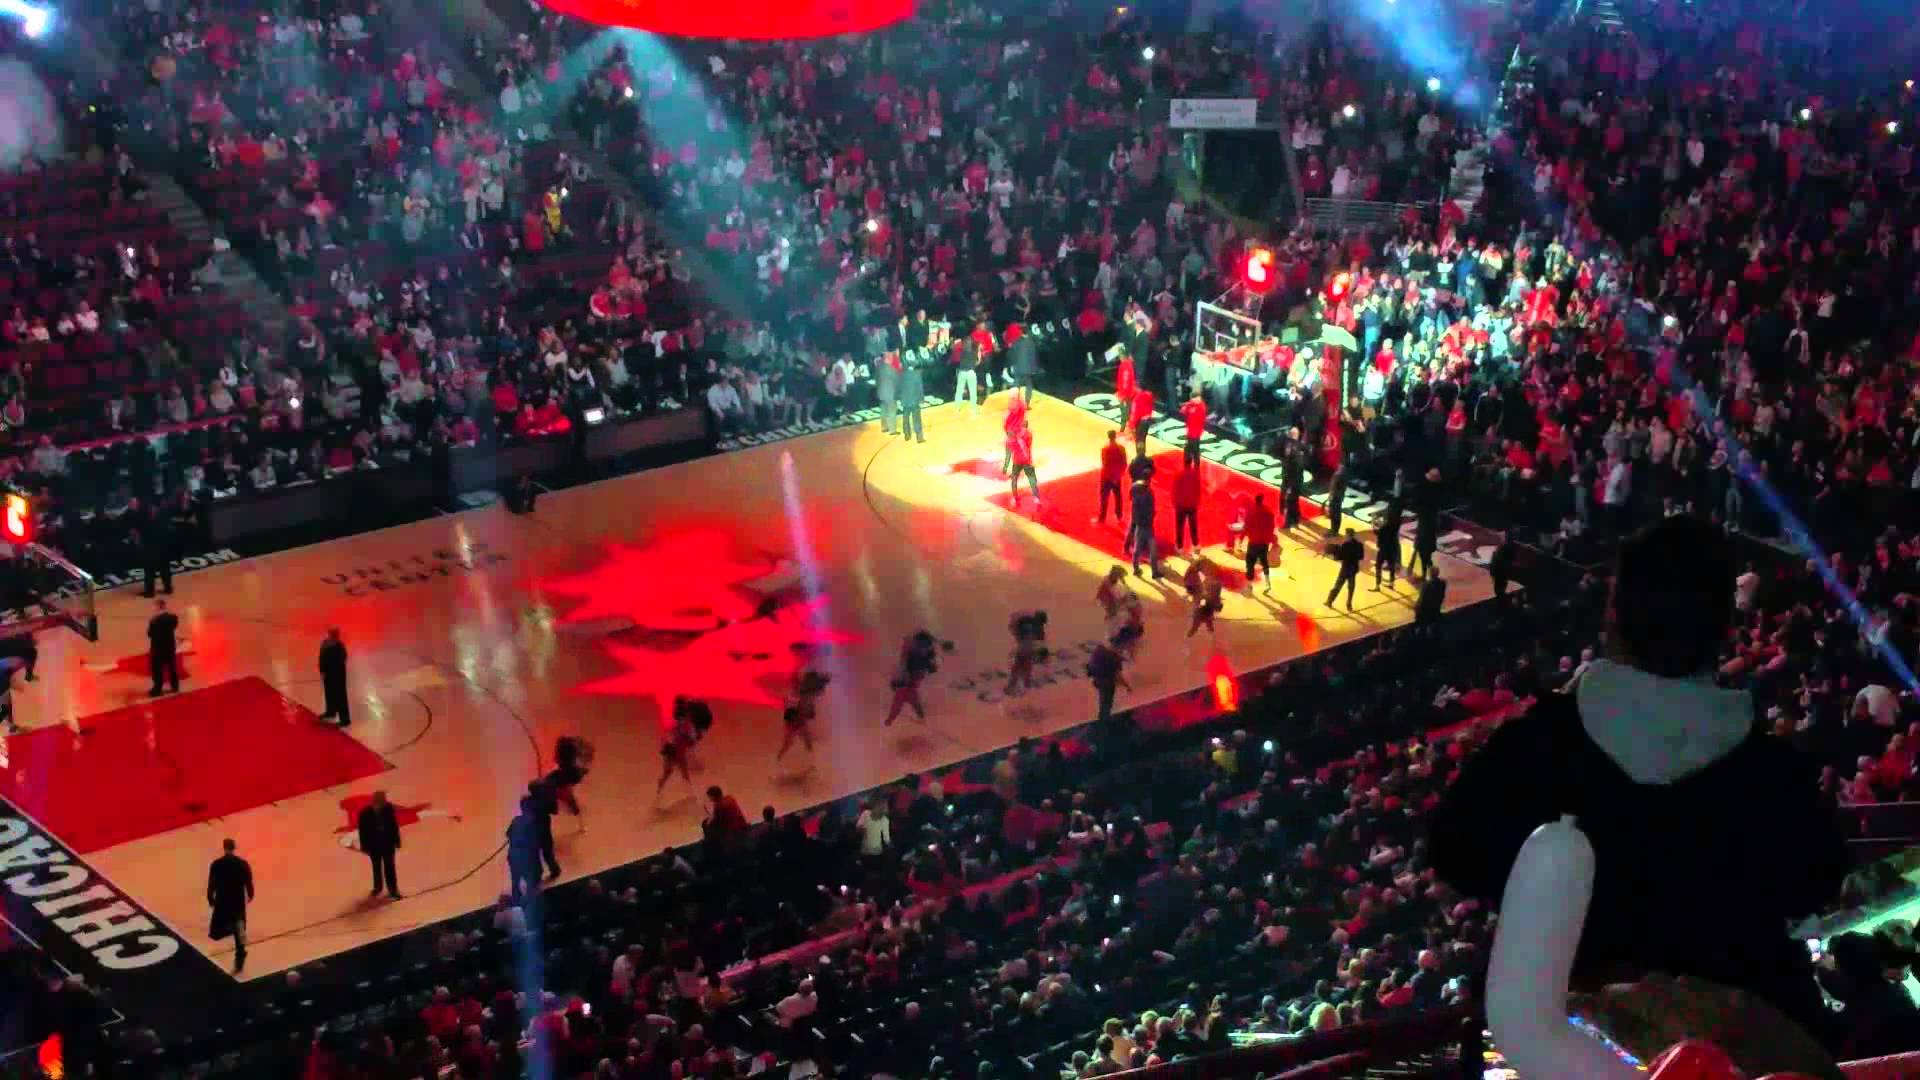 What is the Chicago Bulls theme song? - Quora